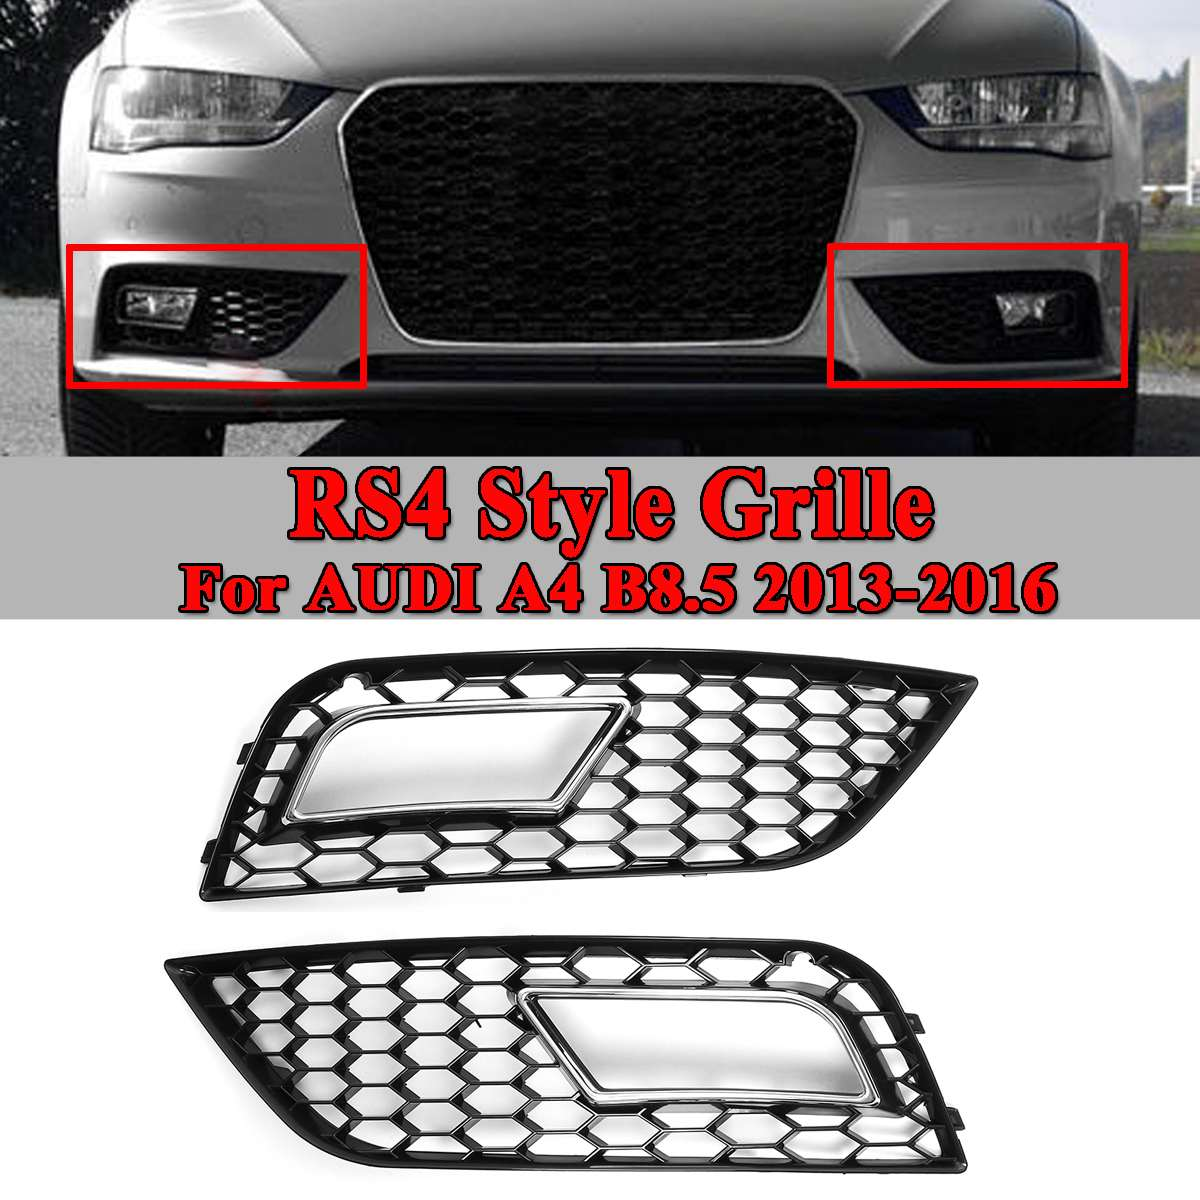 2x Car Bumper Fog Light Lamp Cover Honeycomb Hex Front Racing Grille Grill For Audi A4 B8.5 2013-2016 RS4 Style Chrome/Black2x Car Bumper Fog Light Lamp Cover Honeycomb Hex Front Racing Grille Grill For Audi A4 B8.5 2013-2016 RS4 Style Chrome/Black